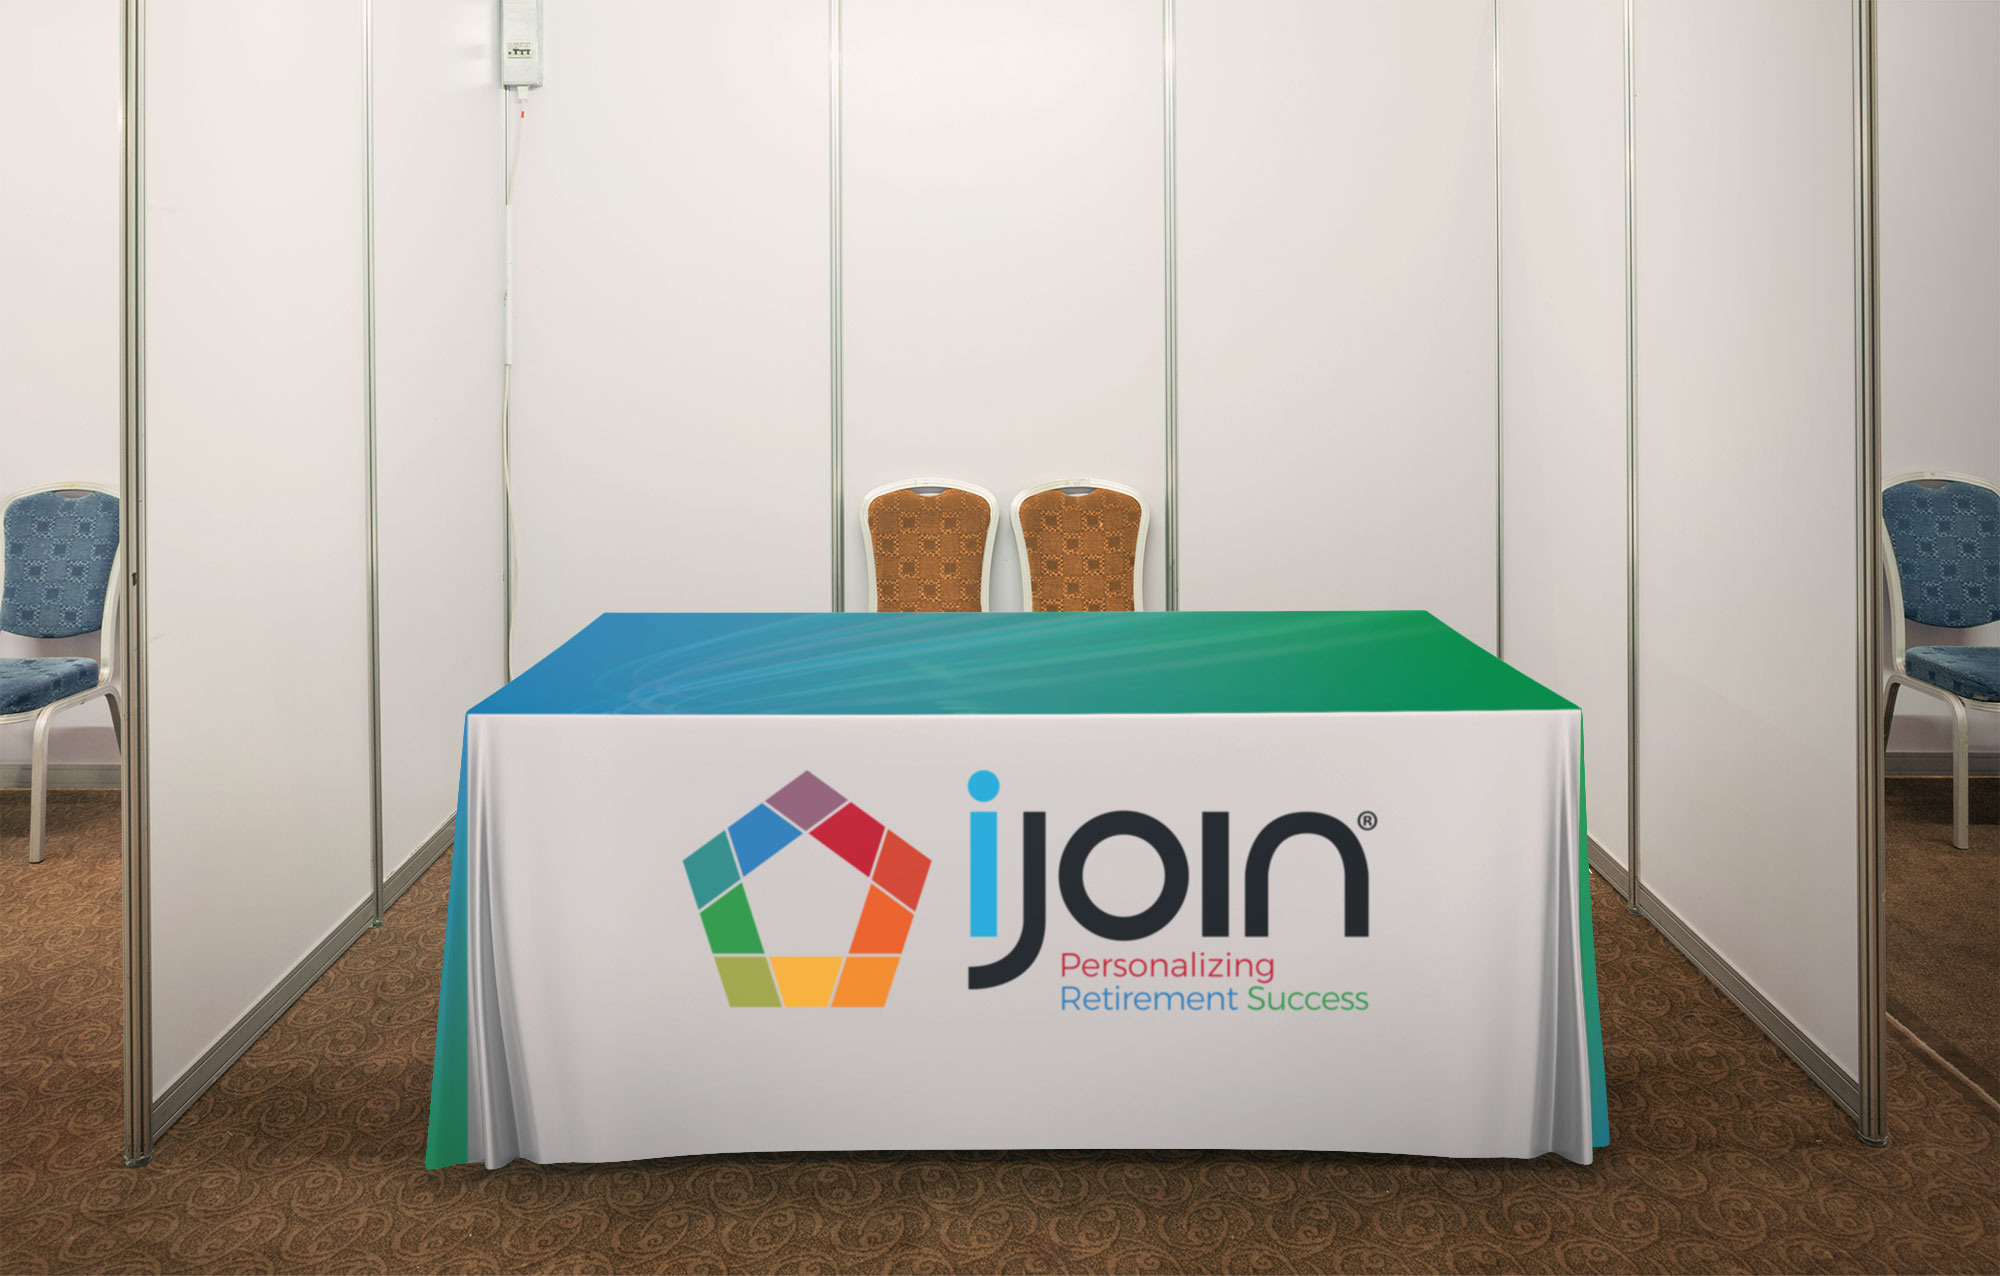 iJoin custom table throw for trade show booths